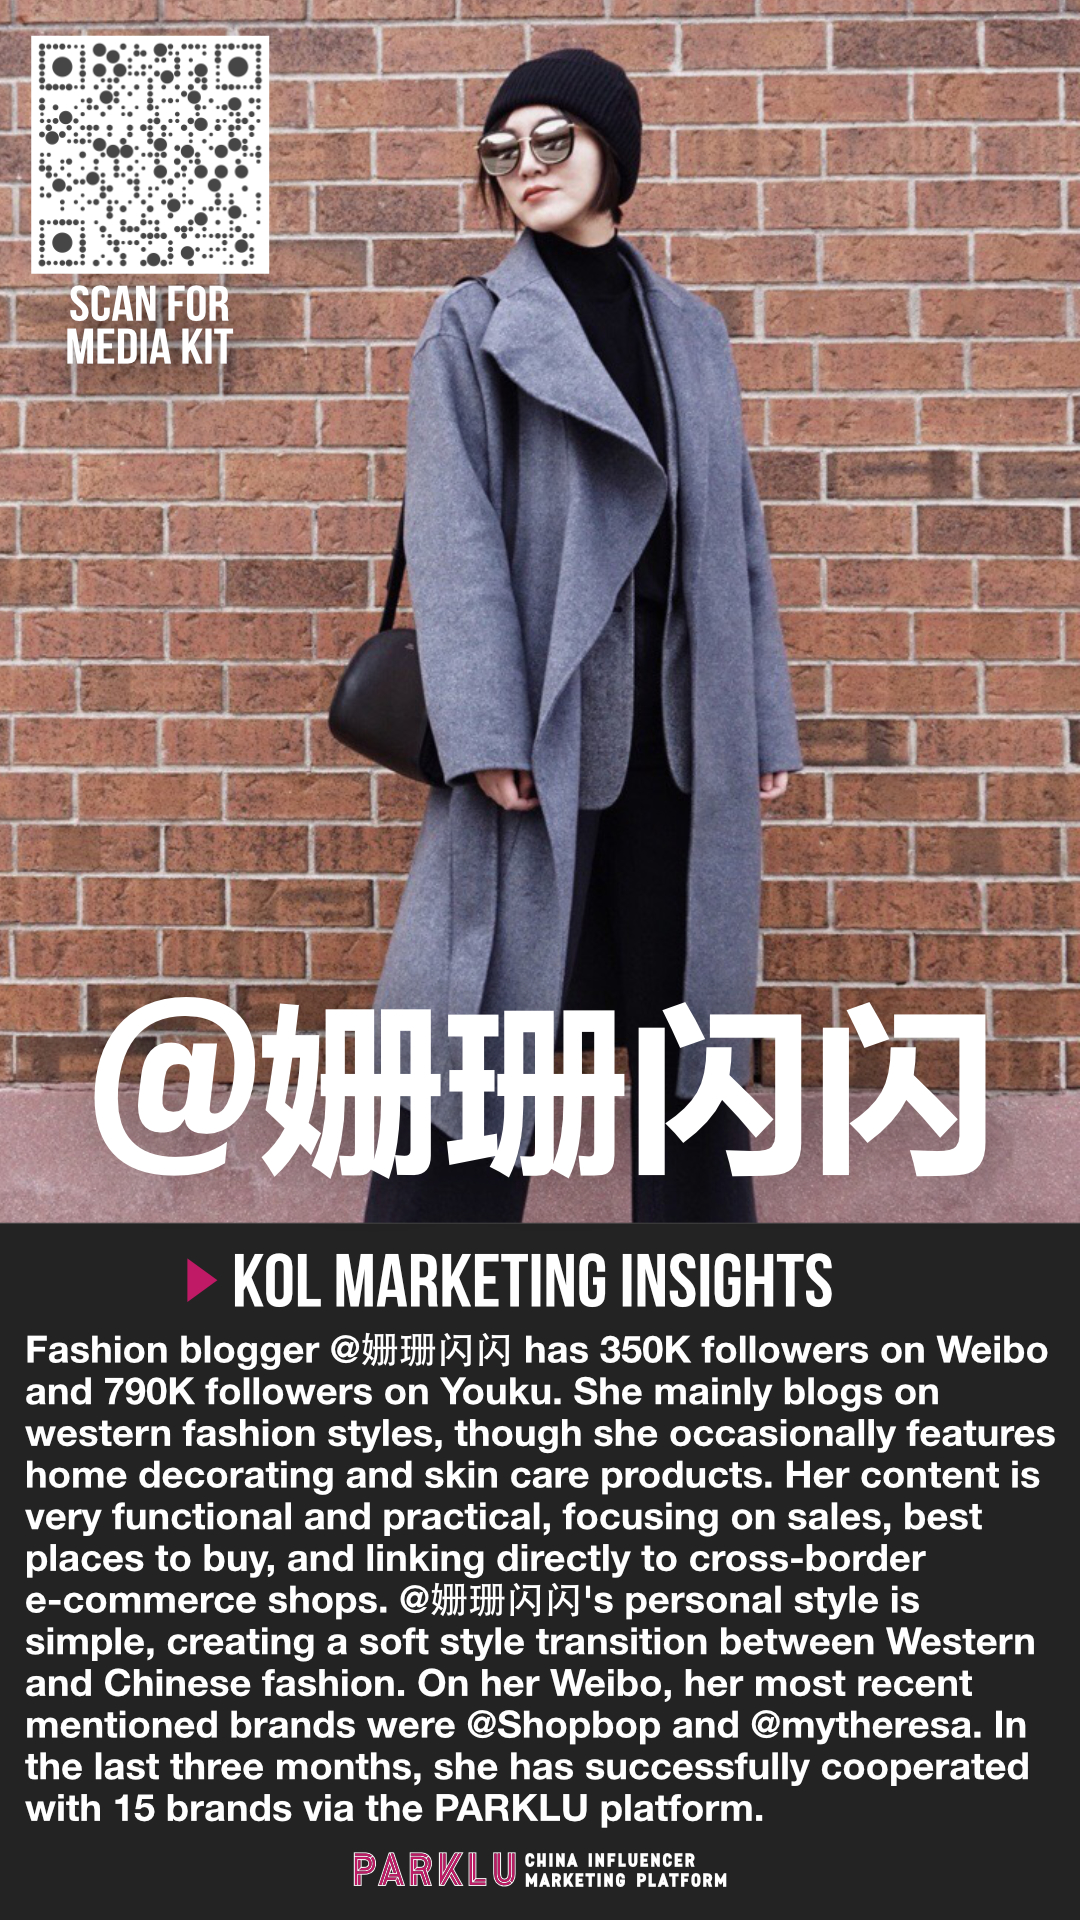 China Weibo & Yizhibo Fashion Blogger with a Western Style